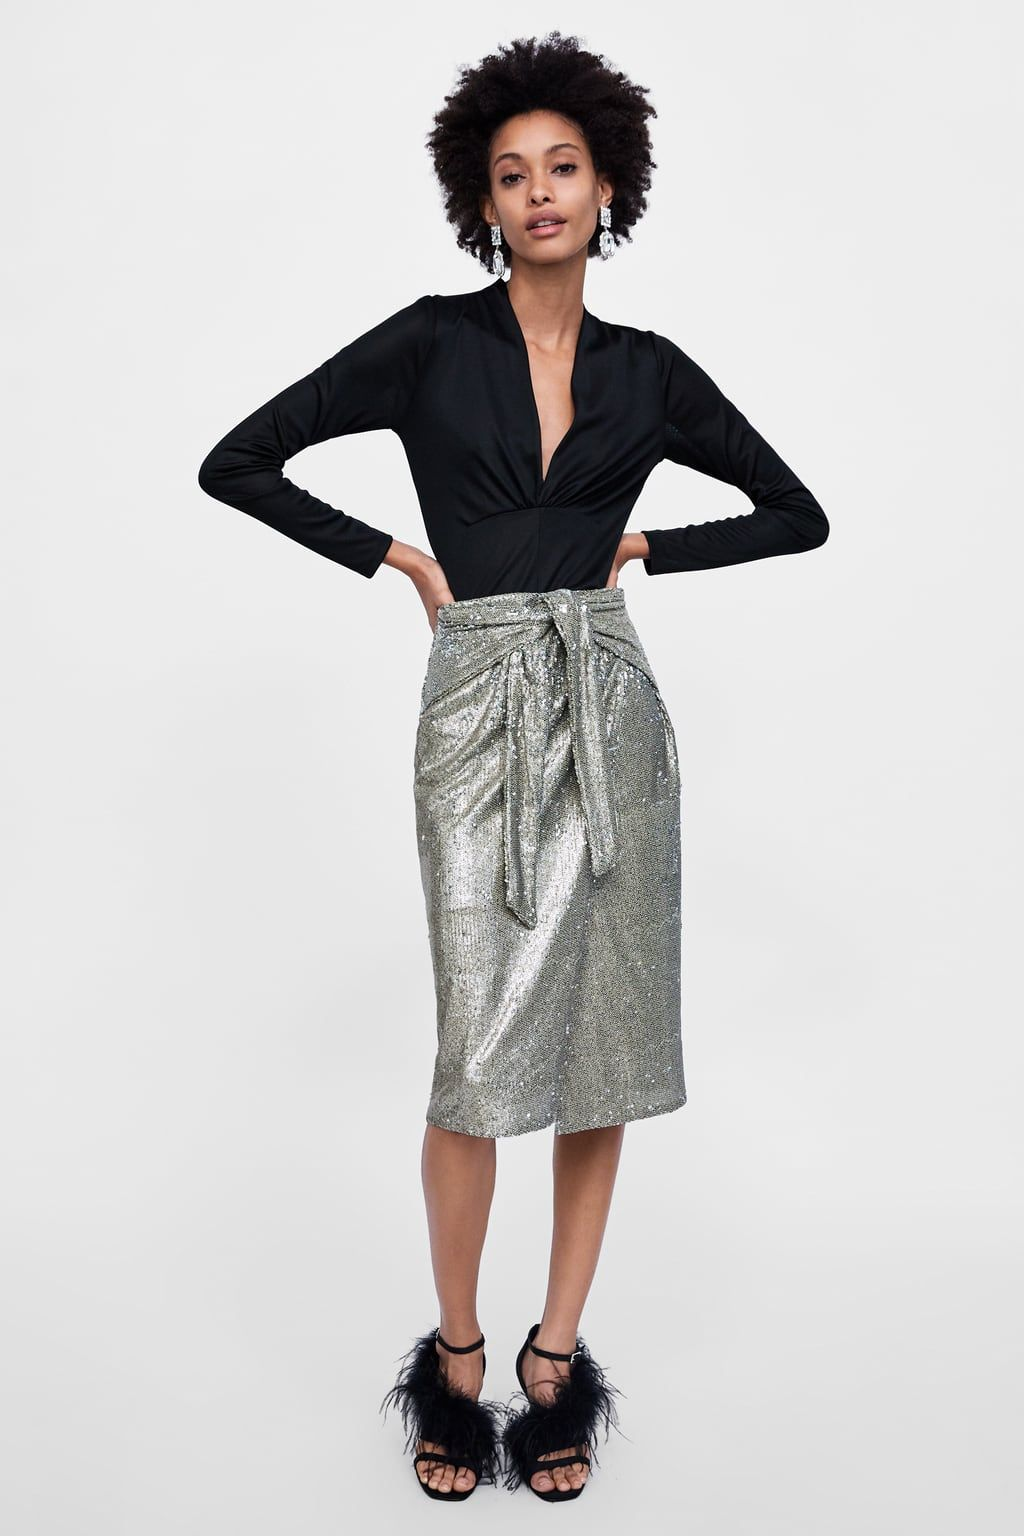 cc0ce3743 Image 1 of KNOTTED SEQUIN SKIRT from Zara | Editor Wish List ...